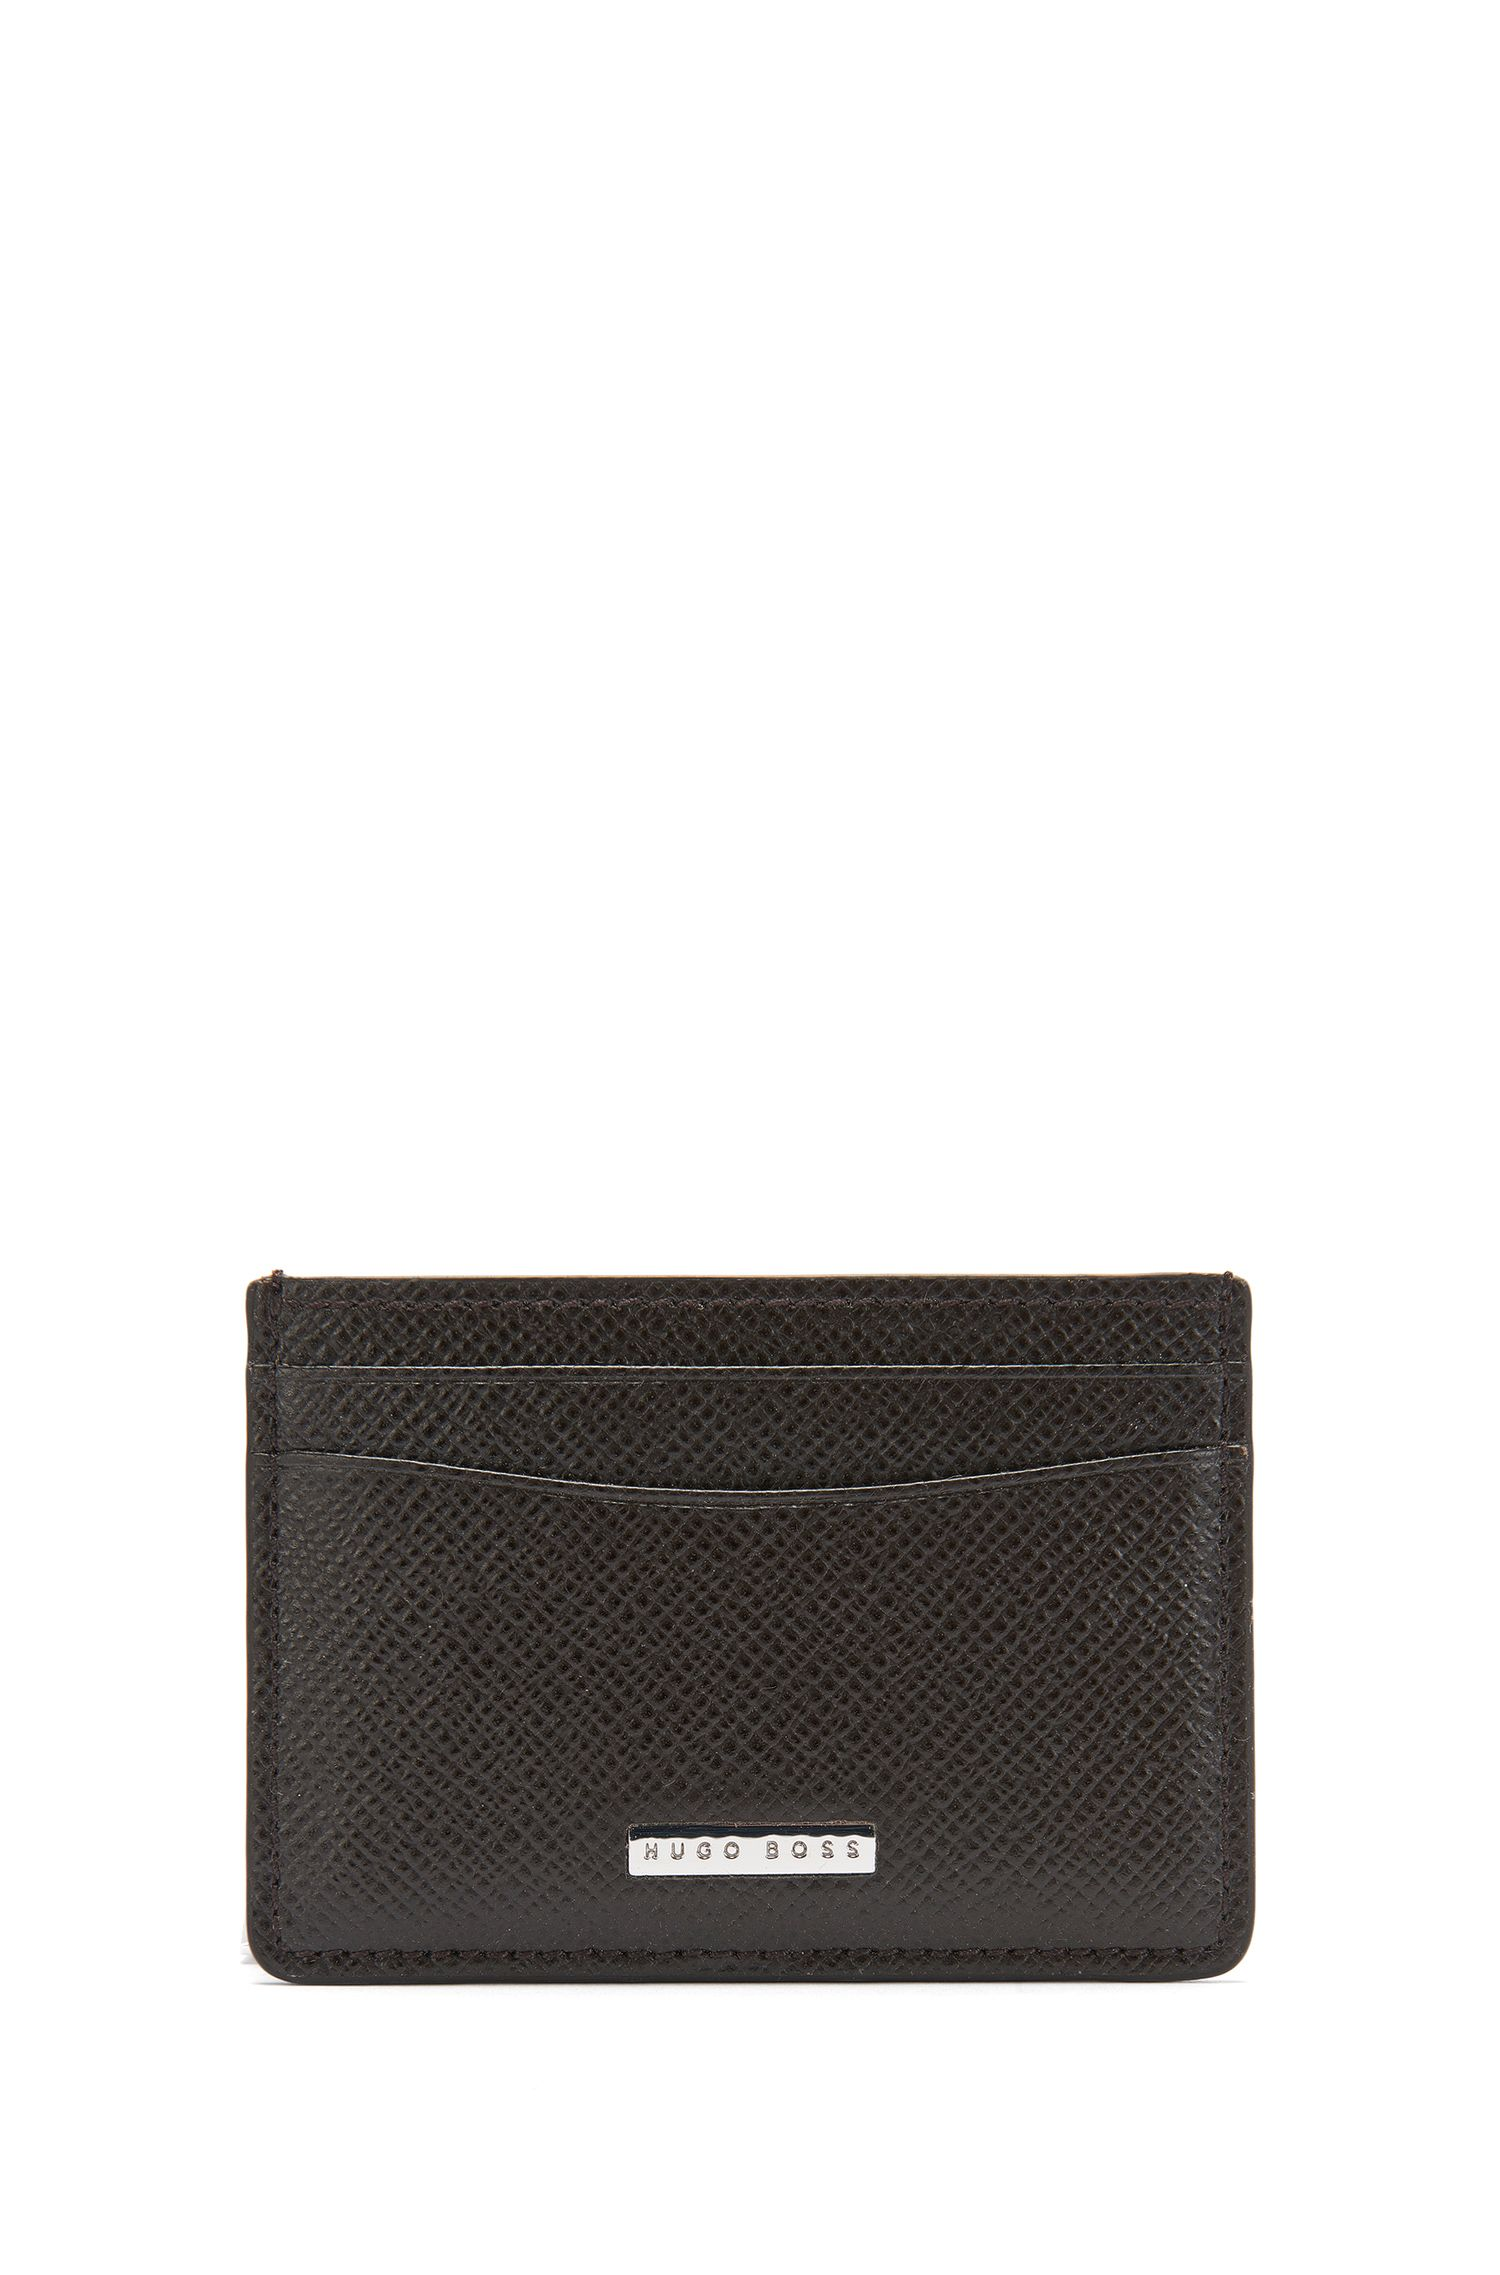 Signature Collection card holder in grained palmellato leather by BOSS